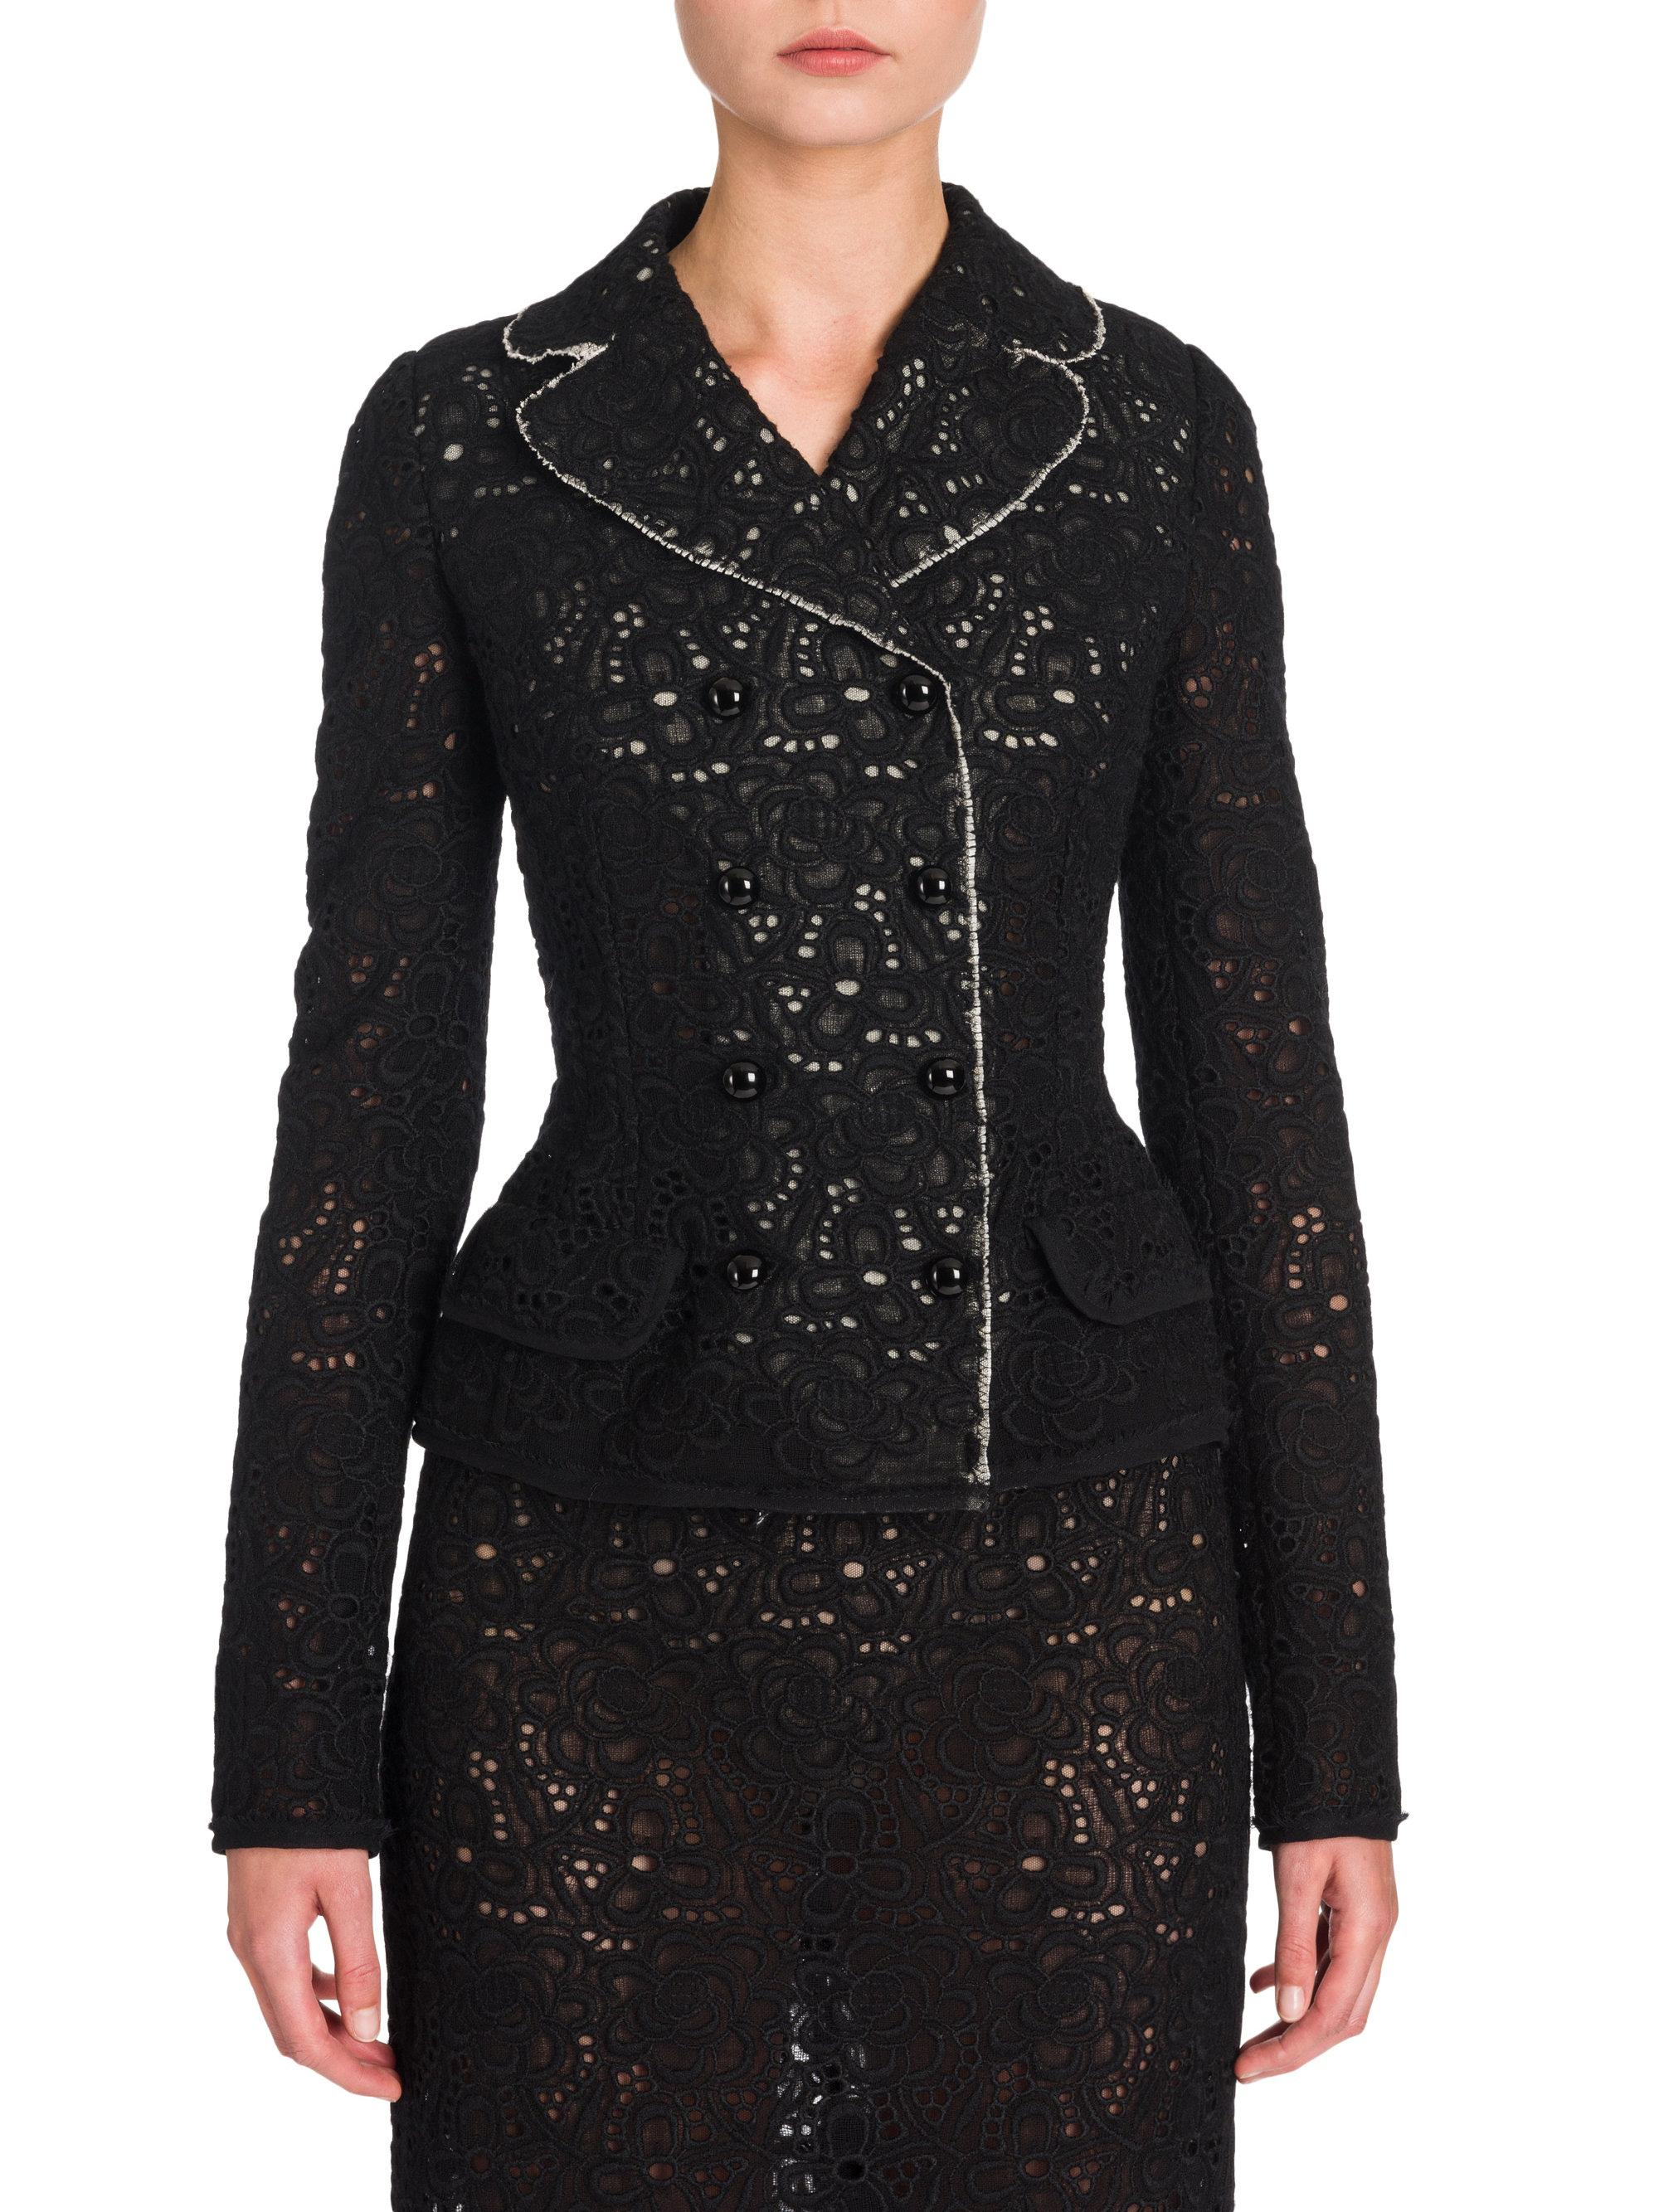 lyst dolce gabbana lace fitted jacket in black. Black Bedroom Furniture Sets. Home Design Ideas